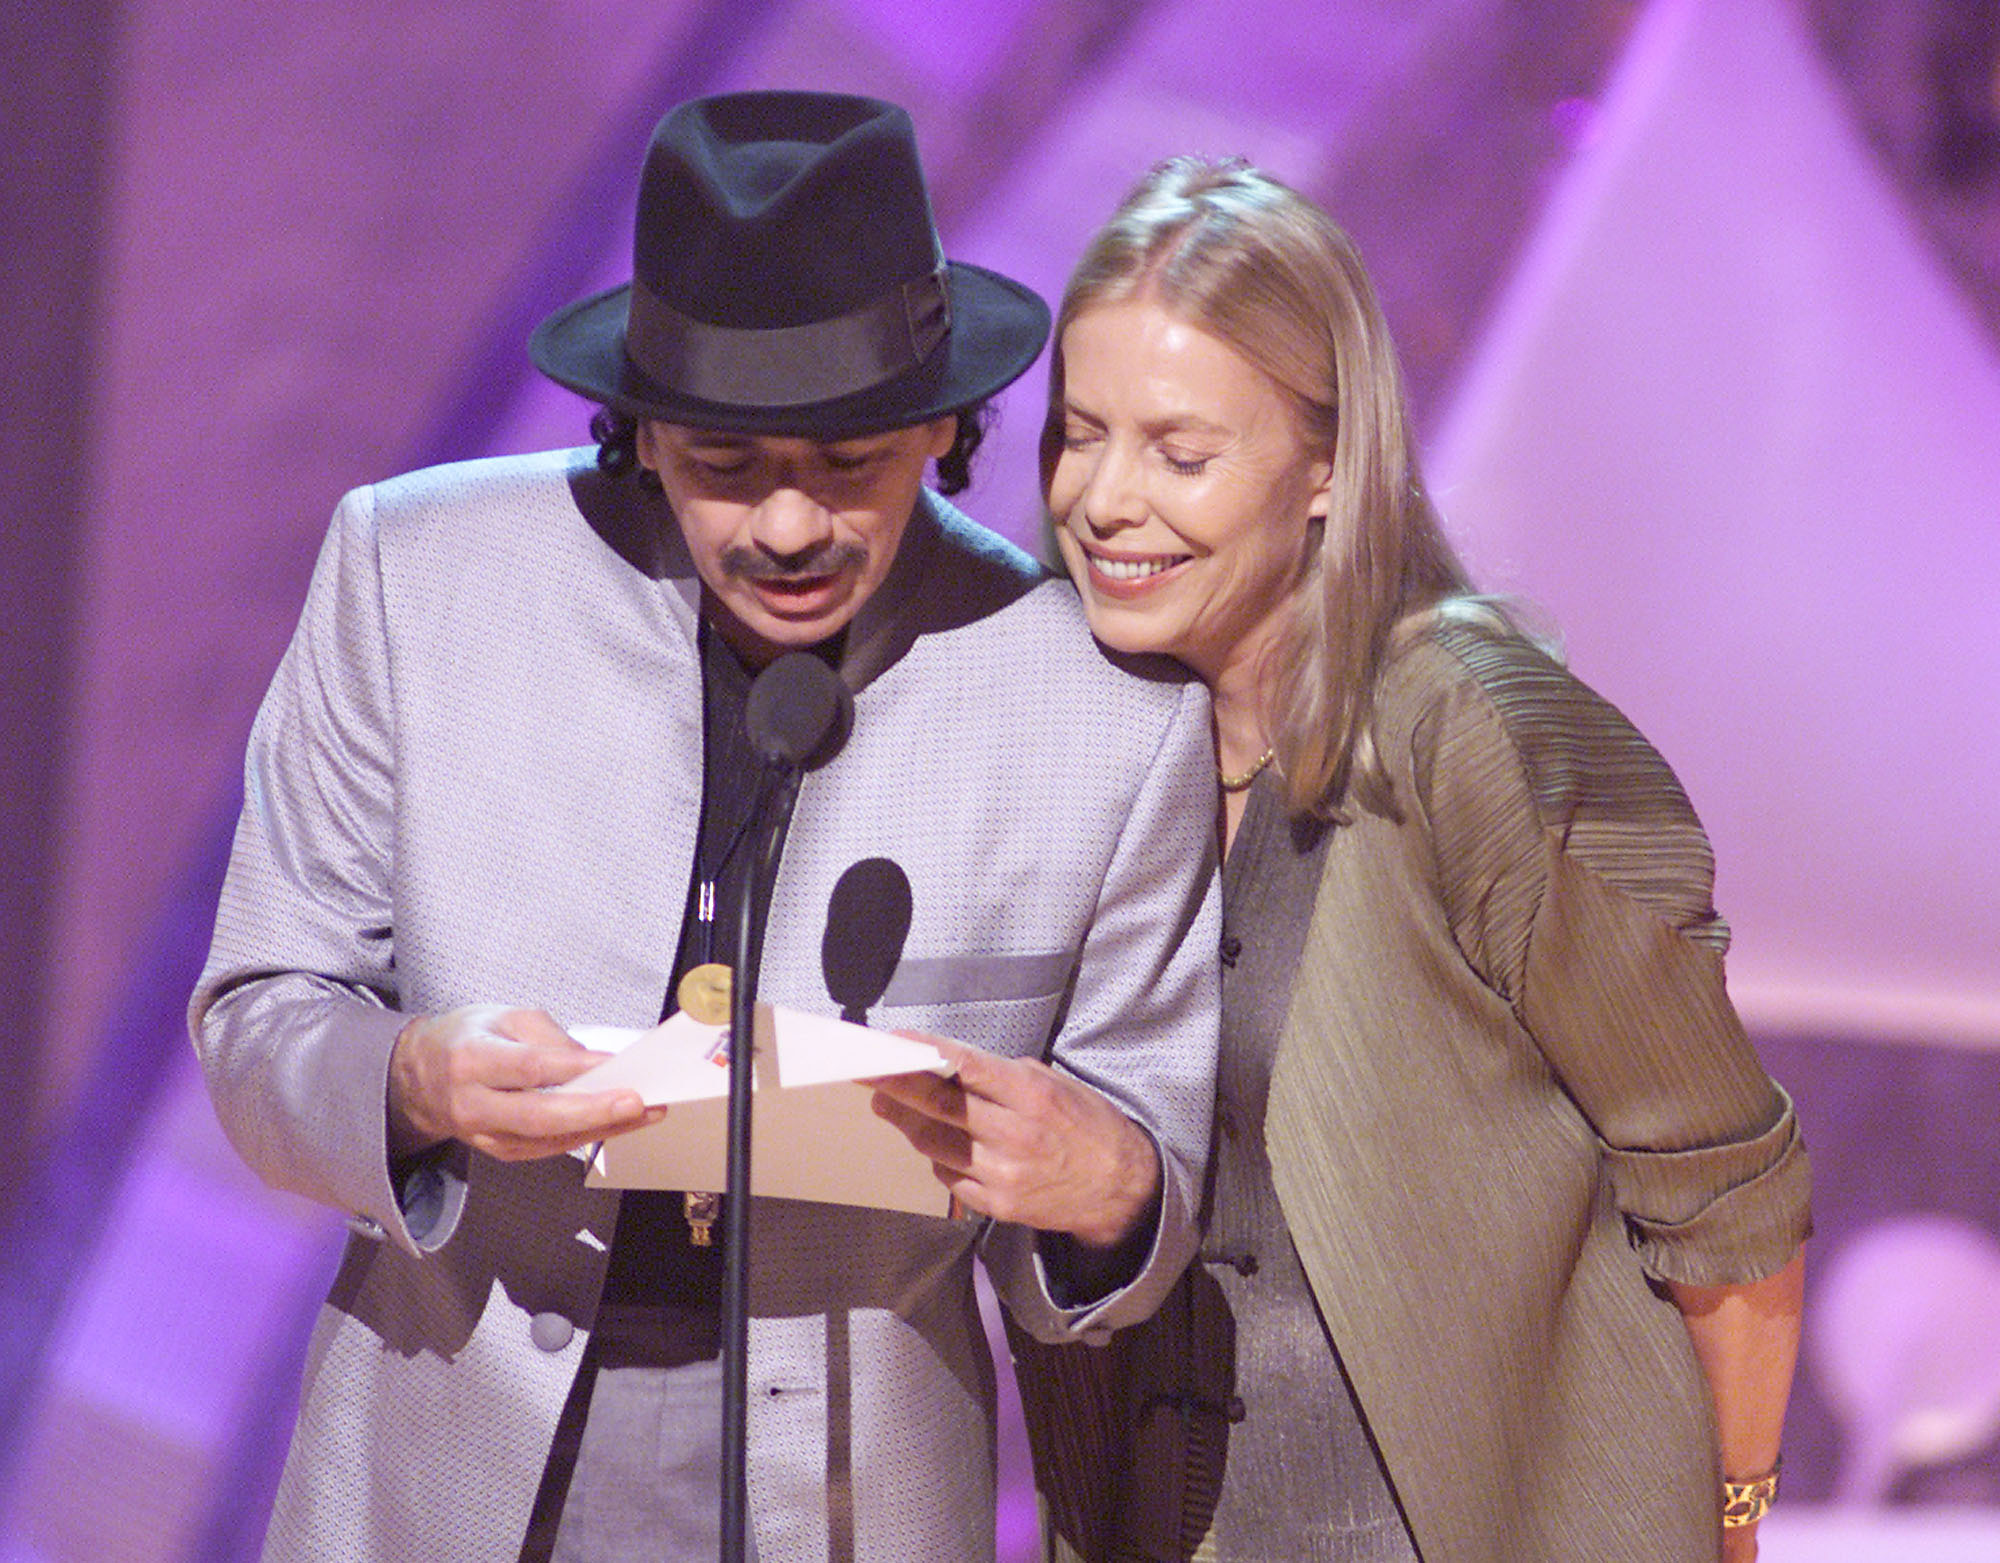 Carlos Santana and Joni Mitchell at the 43rd Annual Grammy Awards broadcast at Staples Center in Los Angeles, CA on February 21, 2001. (Getty)